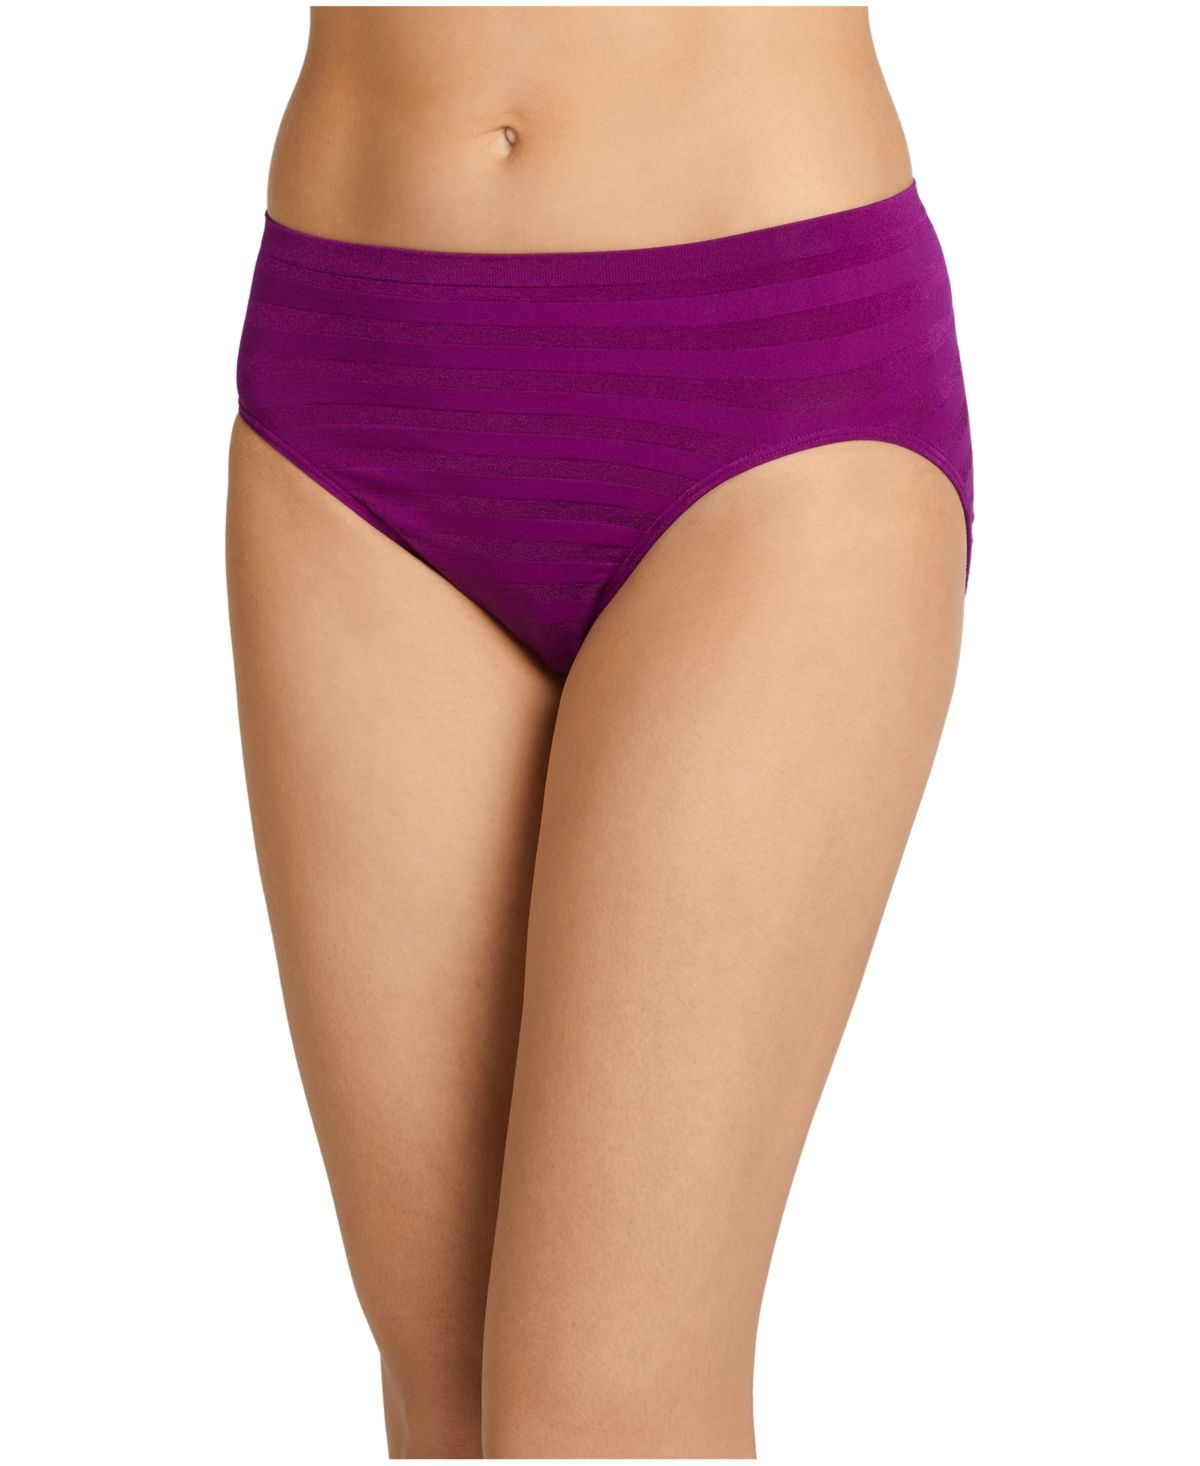 Panties For Women Briefs Thermal Shorts Sexcy Dress